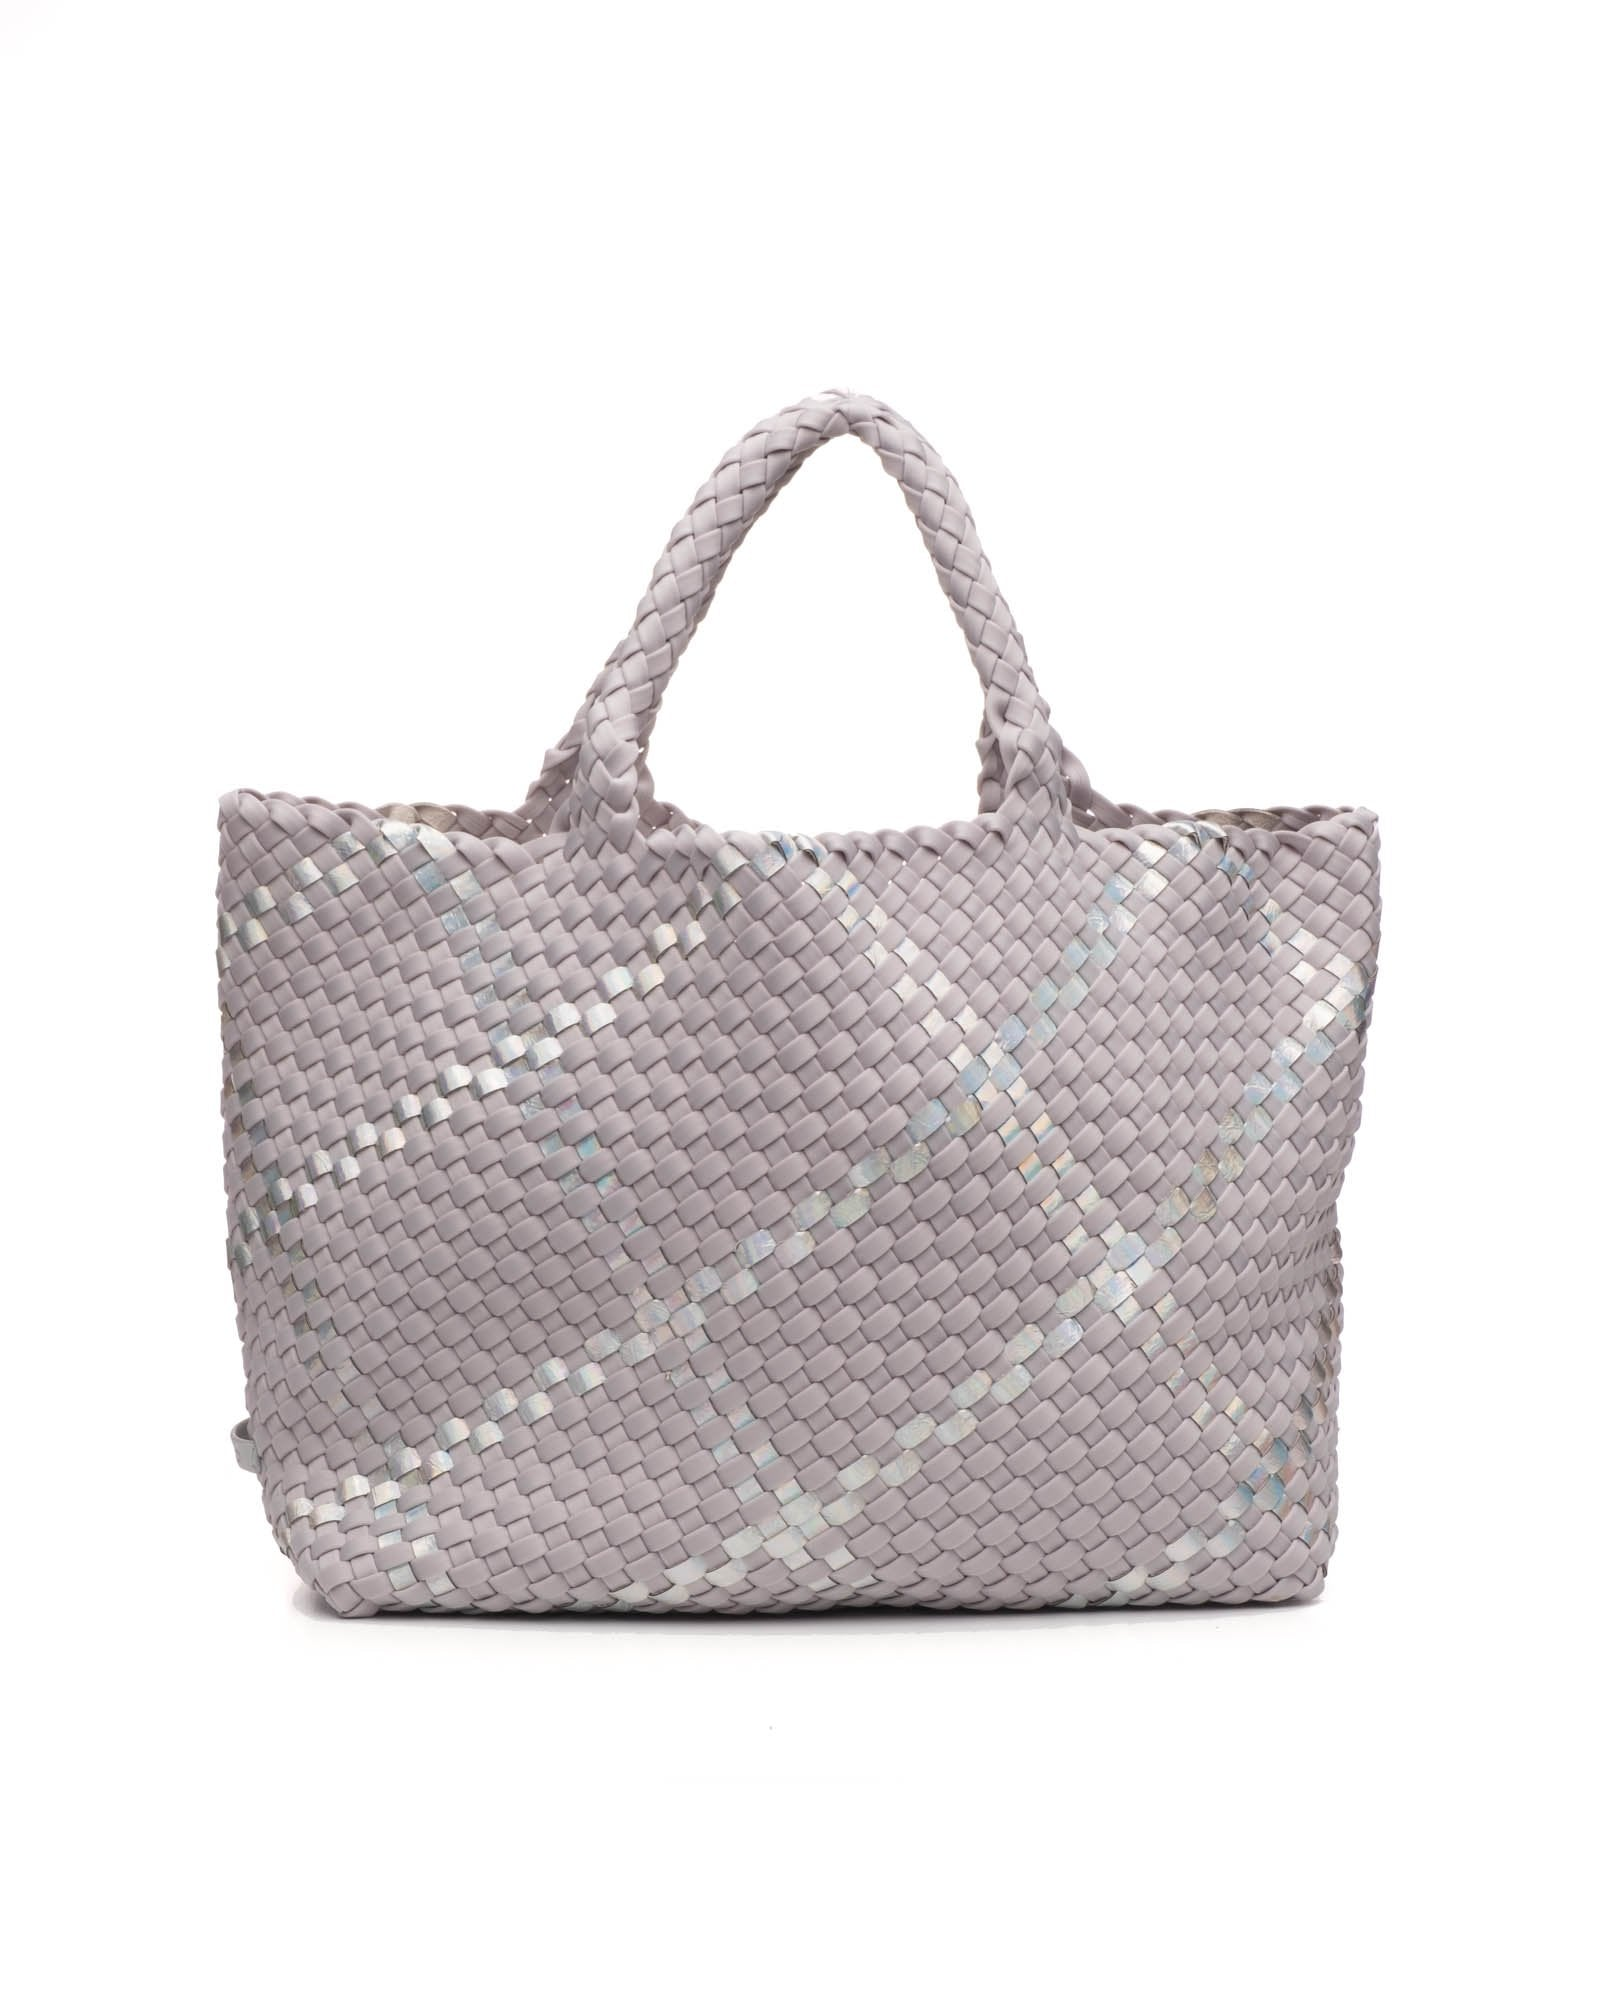 a gray neoprene basket weave tote by Naghedi called Oyster